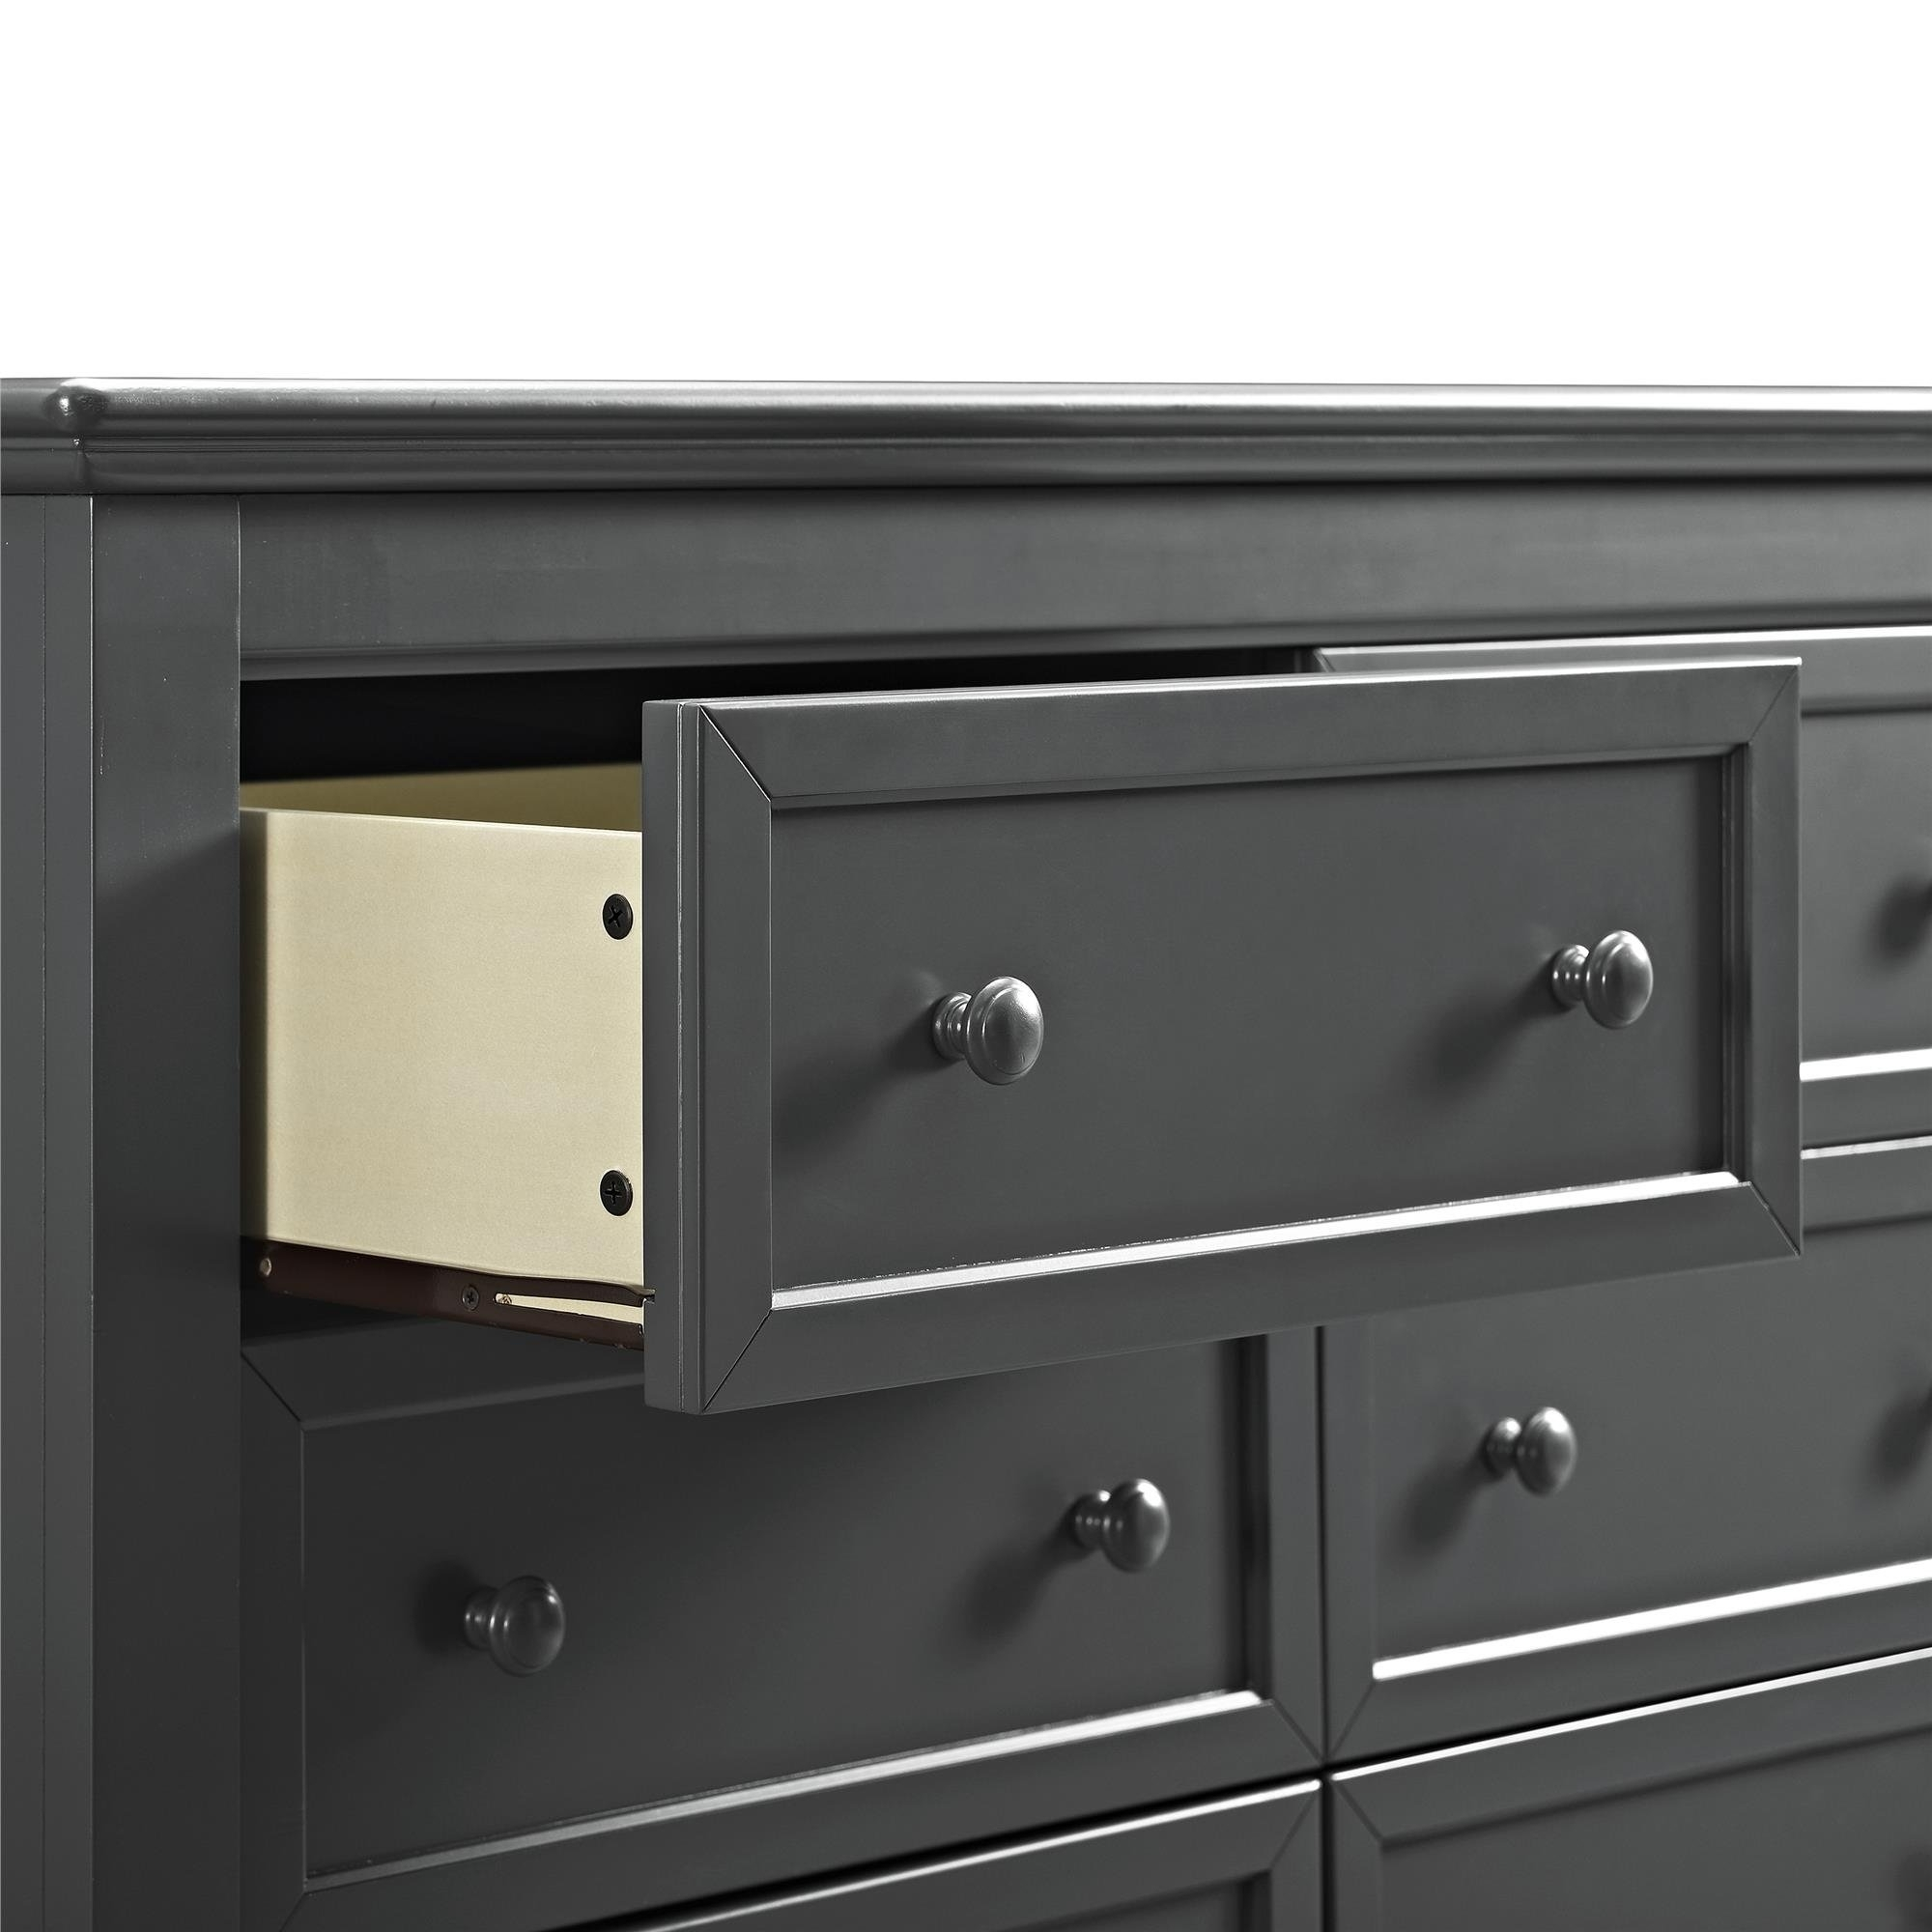 Sideboard Extra Lang. Door Drawer Sideboard With Sideboard Extra within Jigsaw Refinement Sideboards (Image 22 of 30)